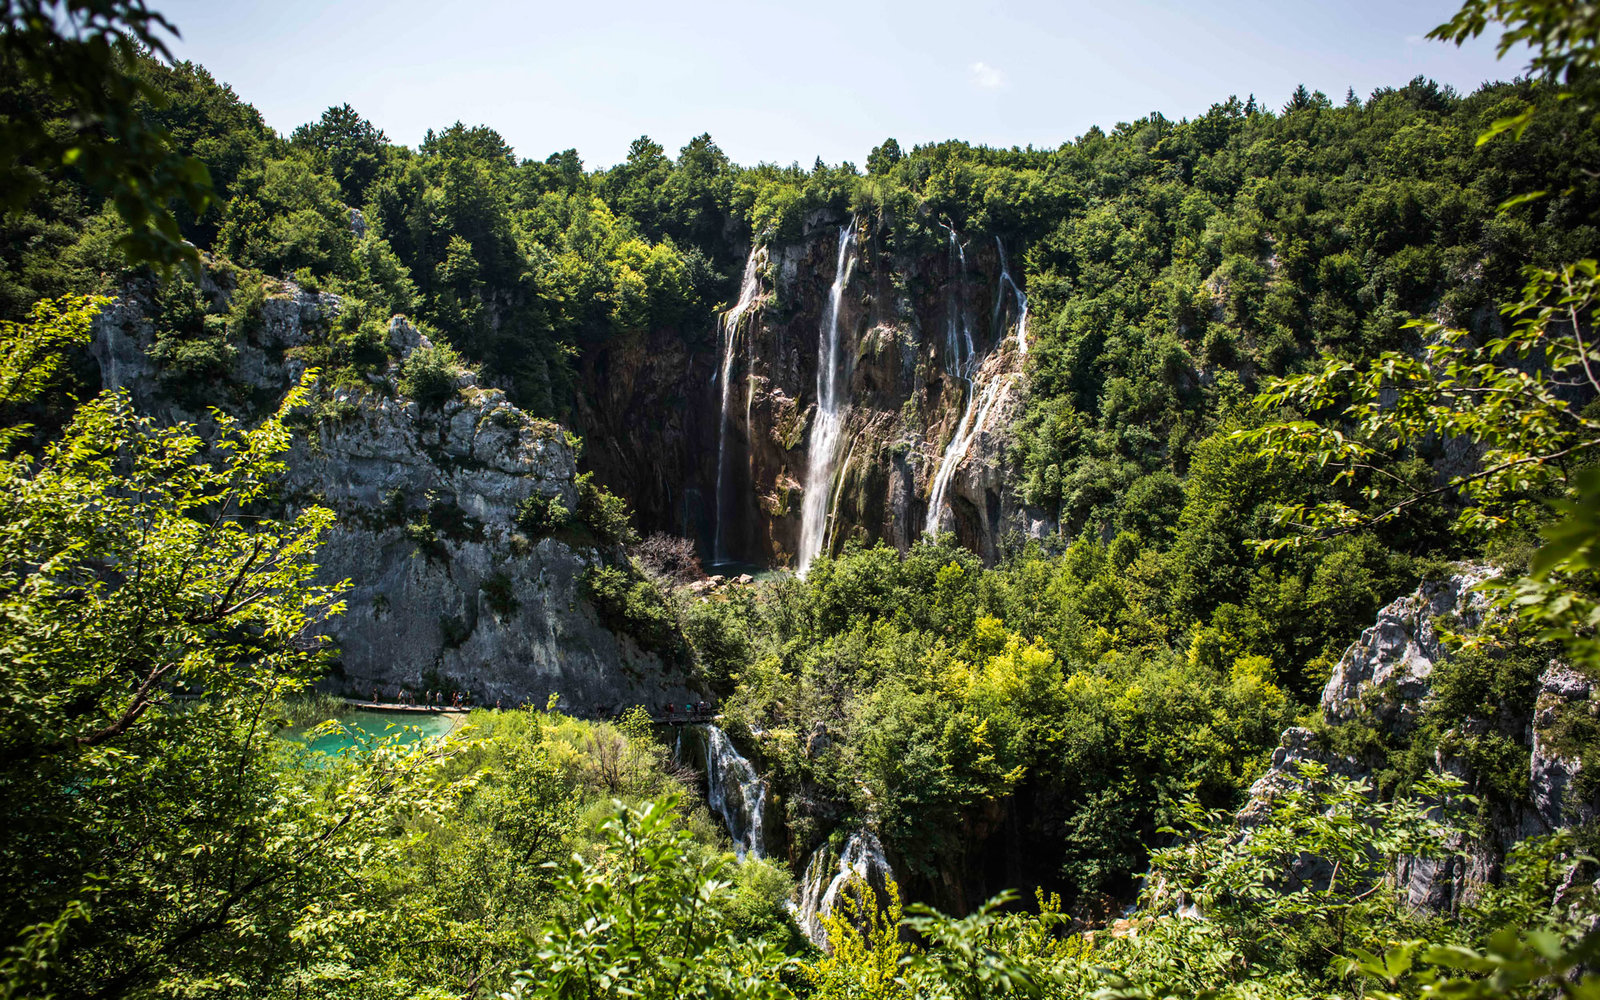 Big Waterfall Plitvice Lakes National Park Croatia